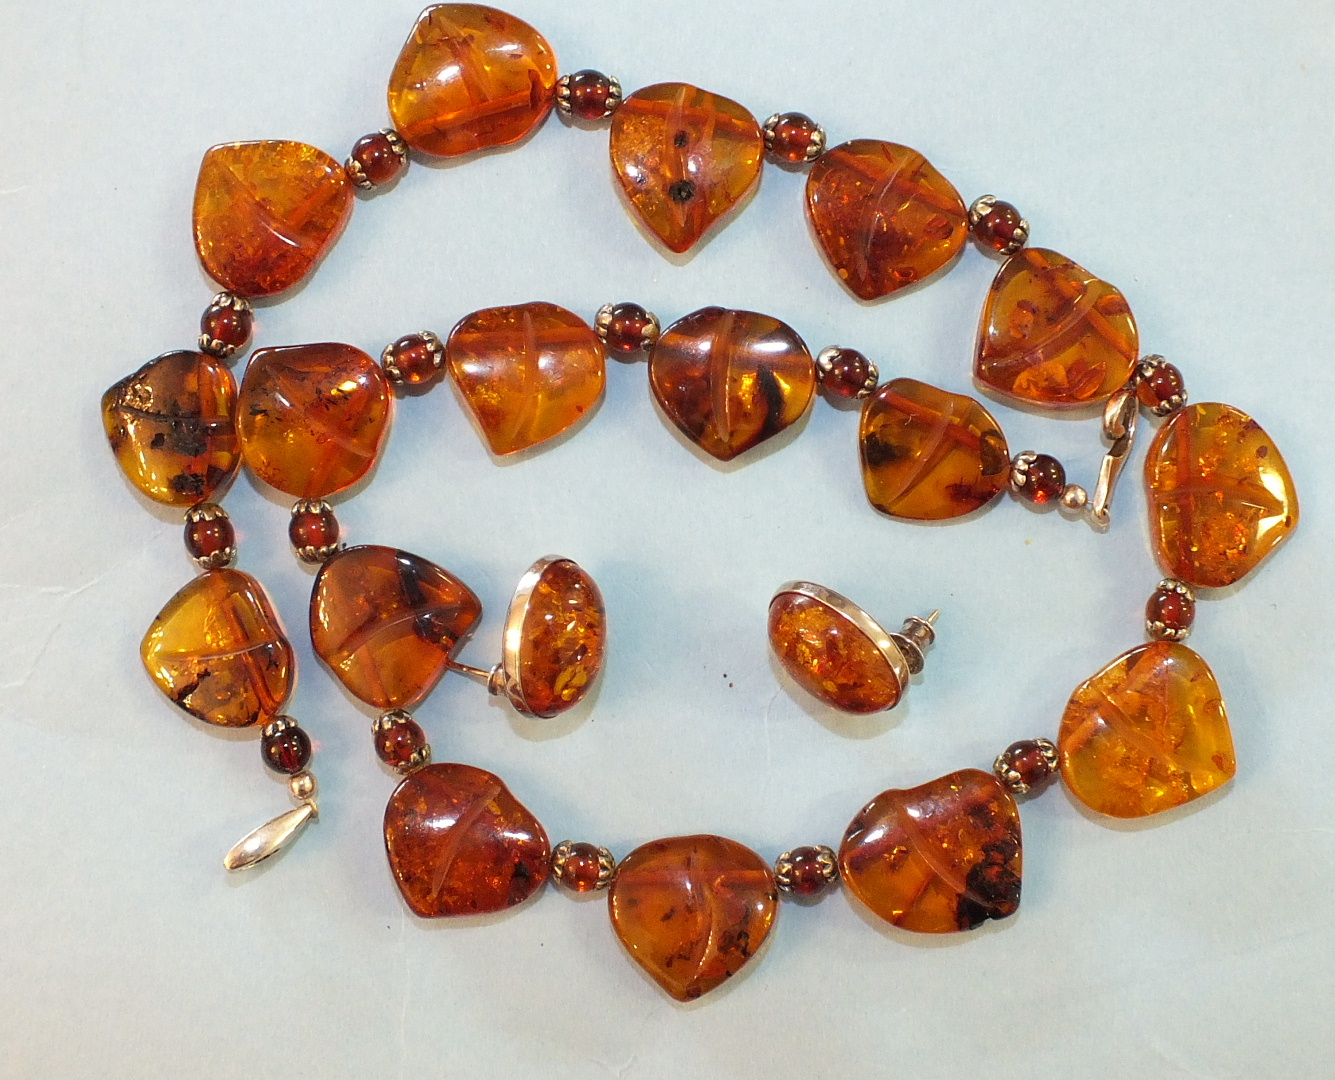 Lot 179 - An amber necklace of seventeen leaf-shaped plaques, (one with small fly inclusion), with amber beads